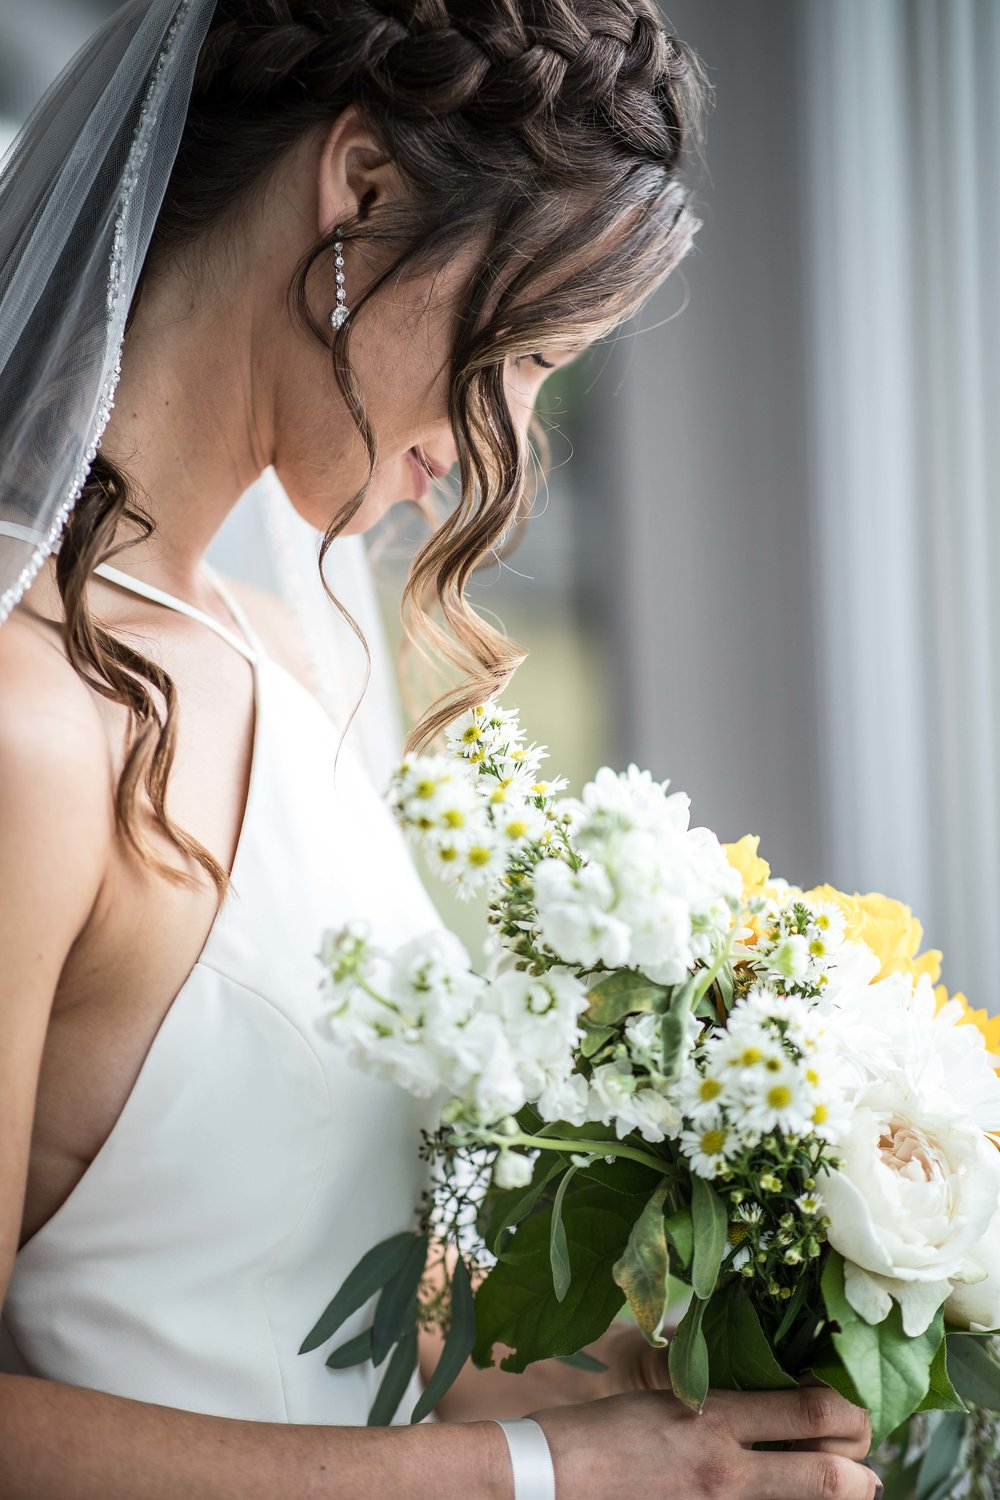 bride looks down into her flower bouquet